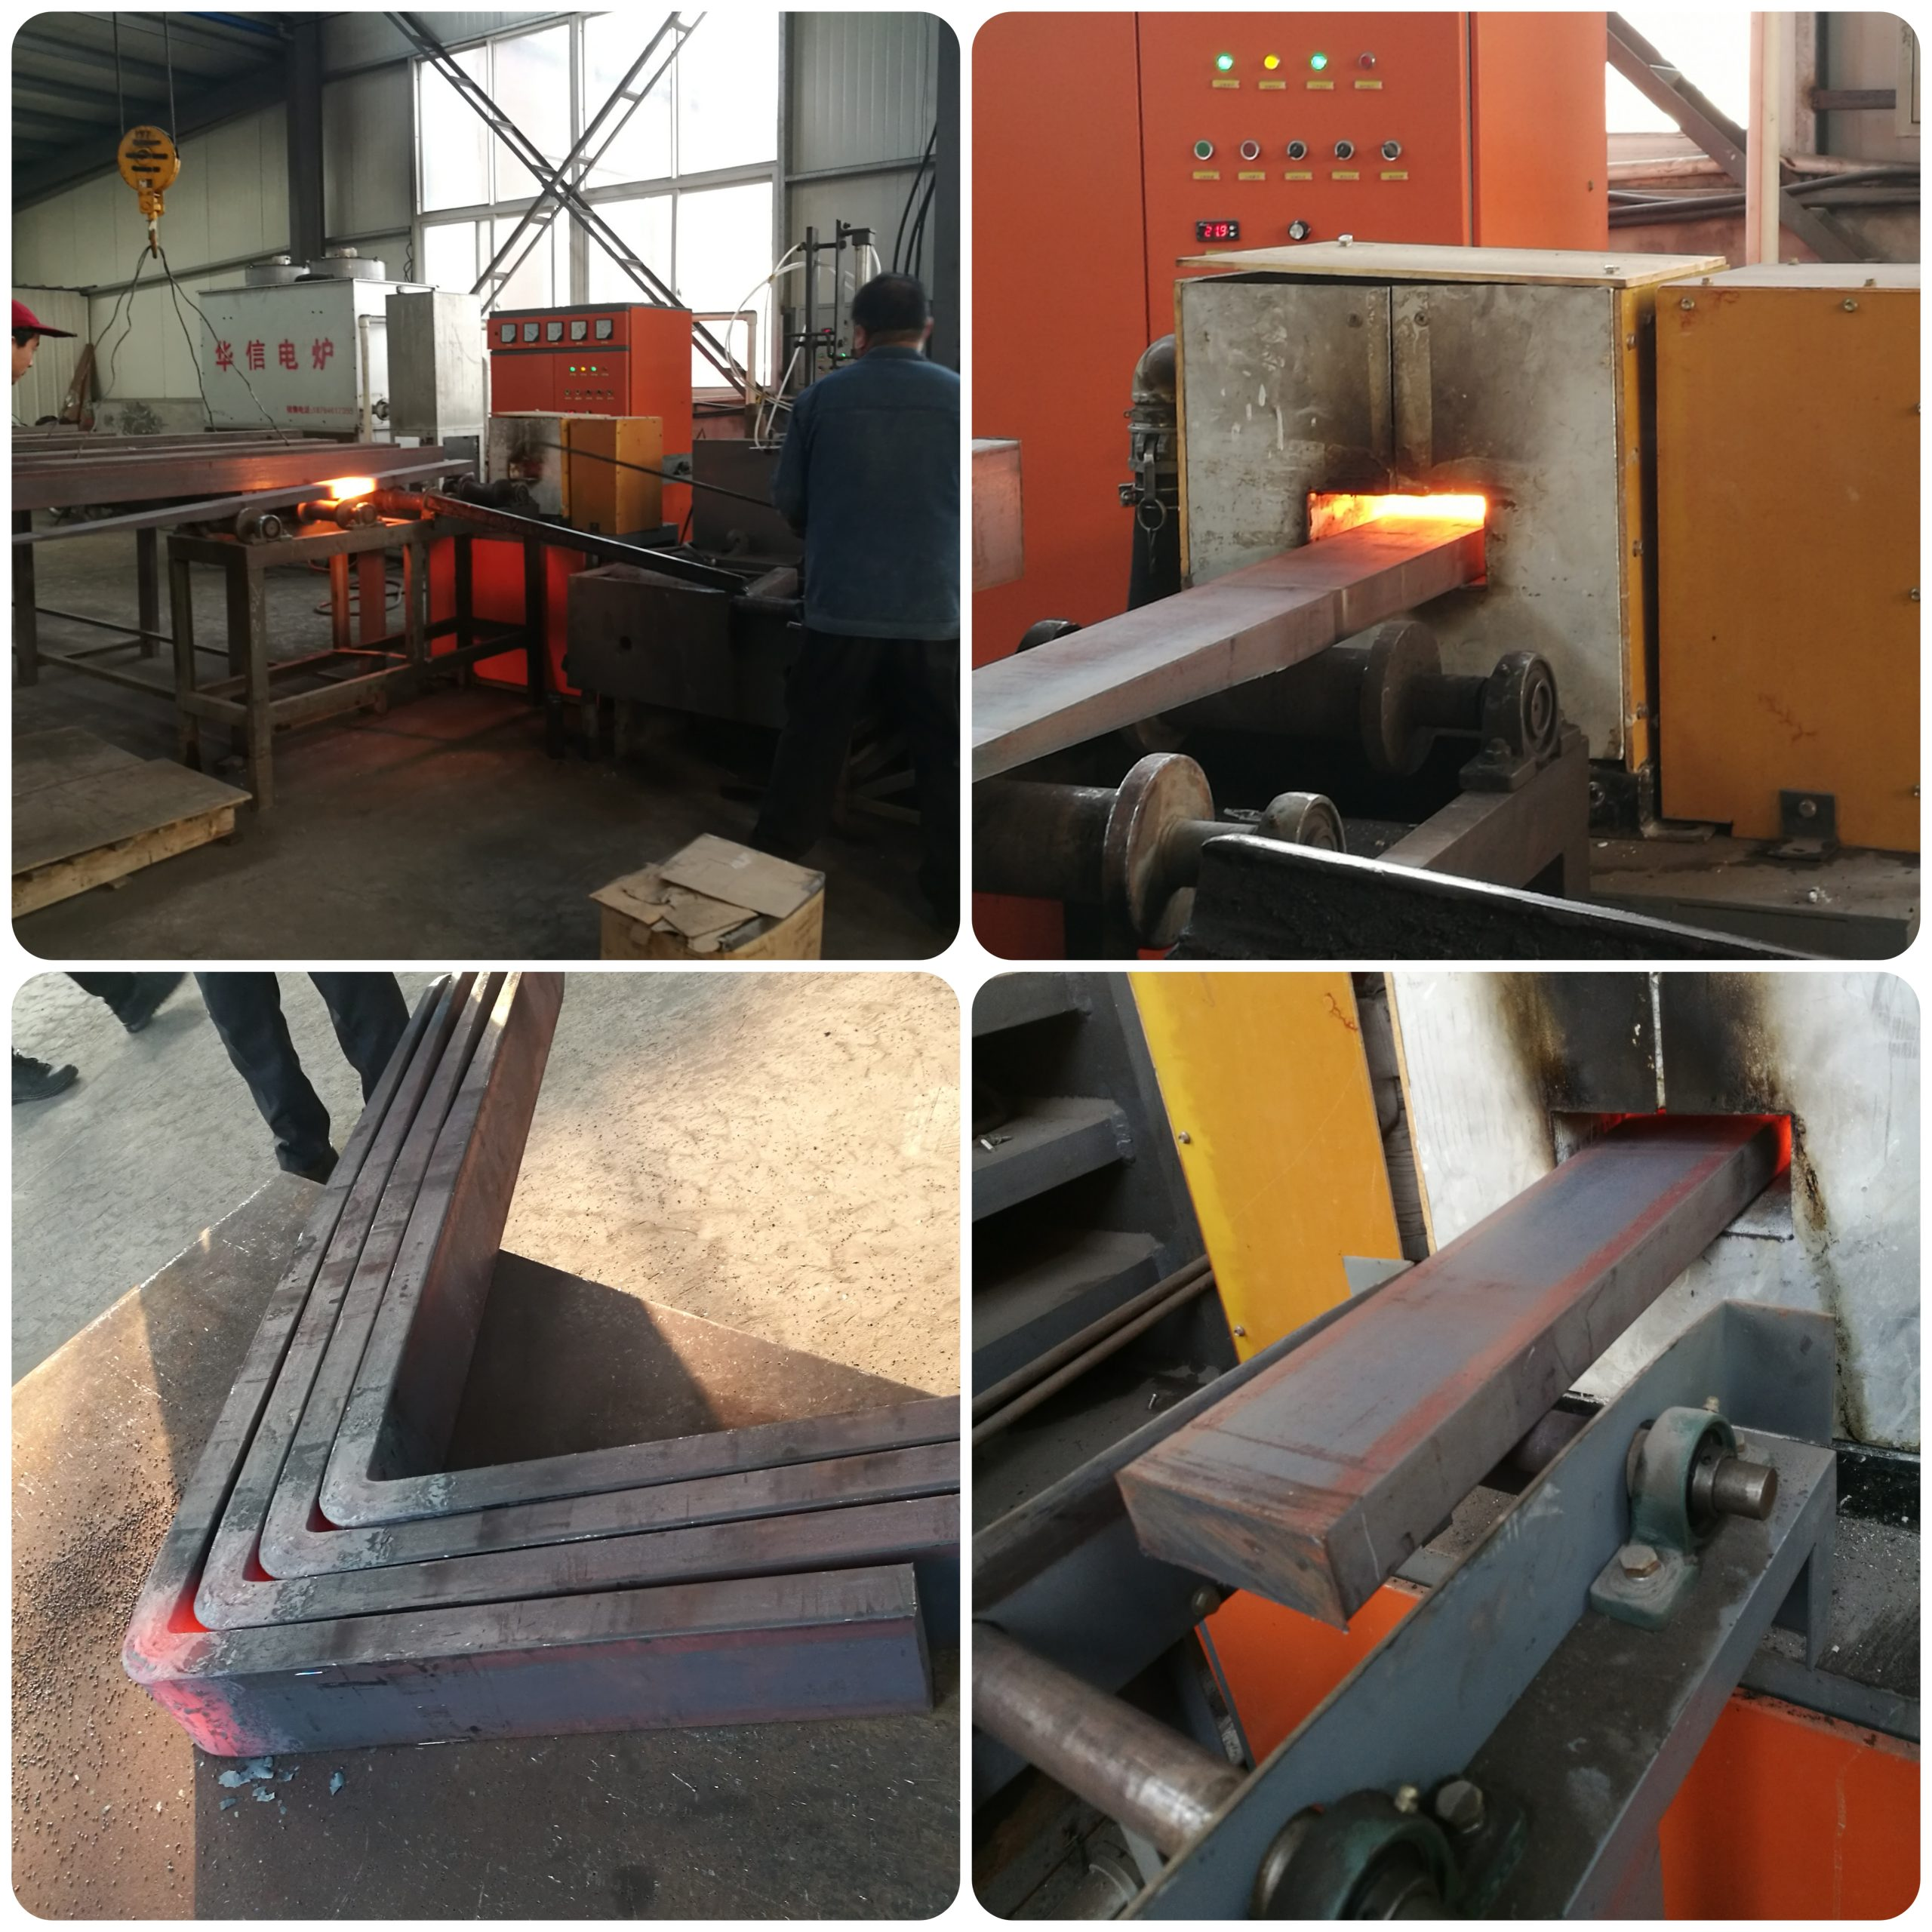 induction heating furnace working site